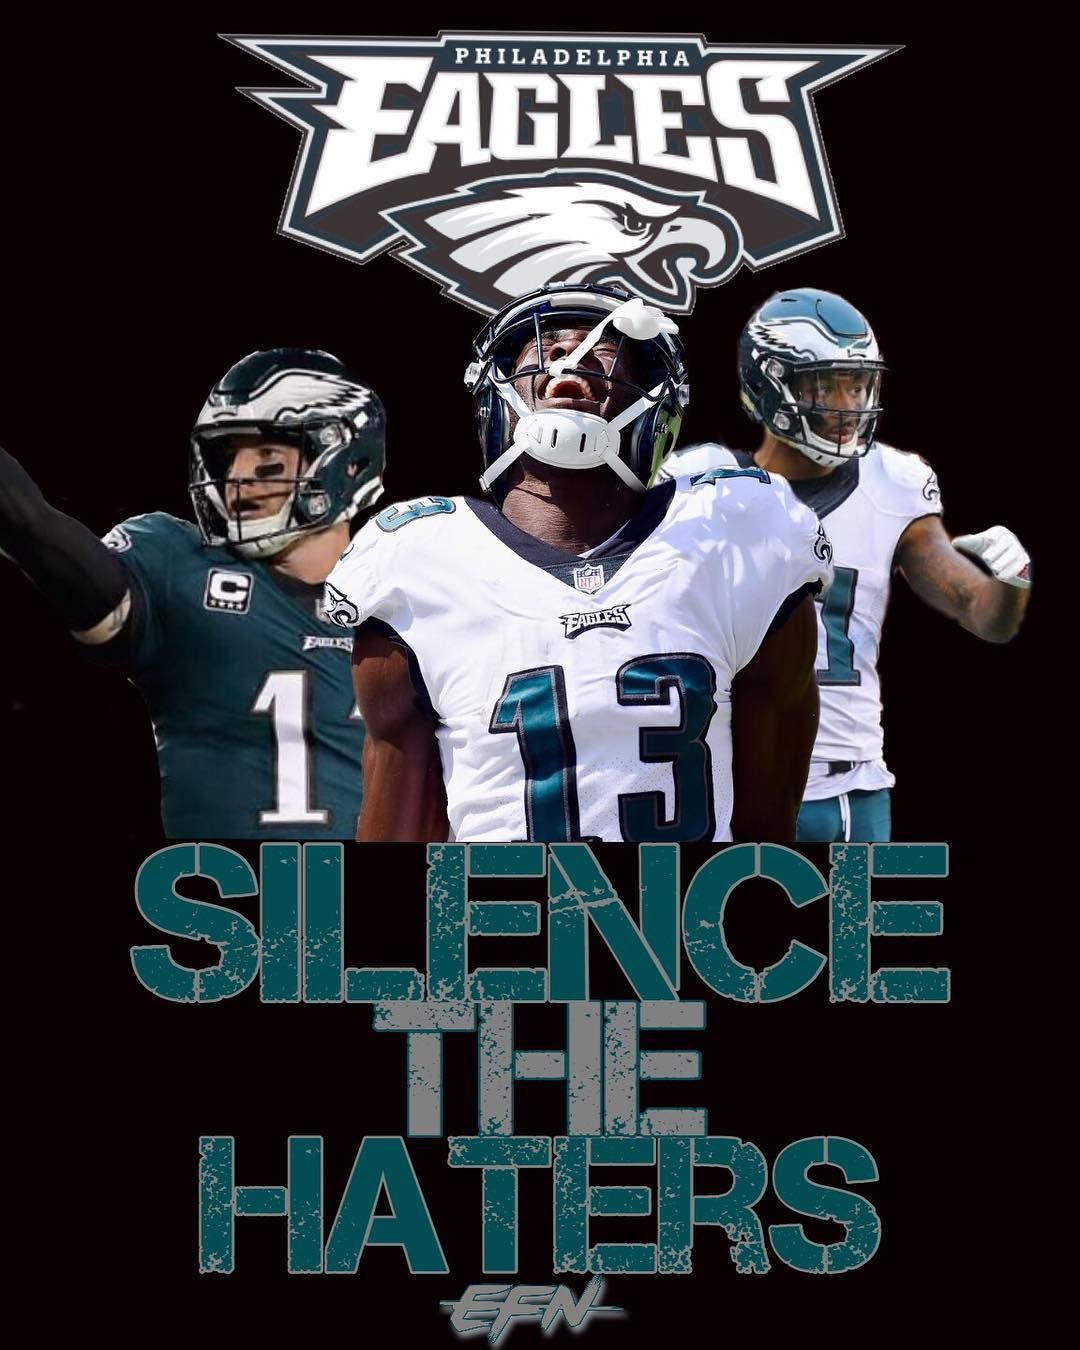 Just Made This Eagles Lockscreen I Thought It Was Fitting With Recent Events Dm Me Philadelphia Eagles Football Philly Eagles Philadelphia Eagles Super Bowl